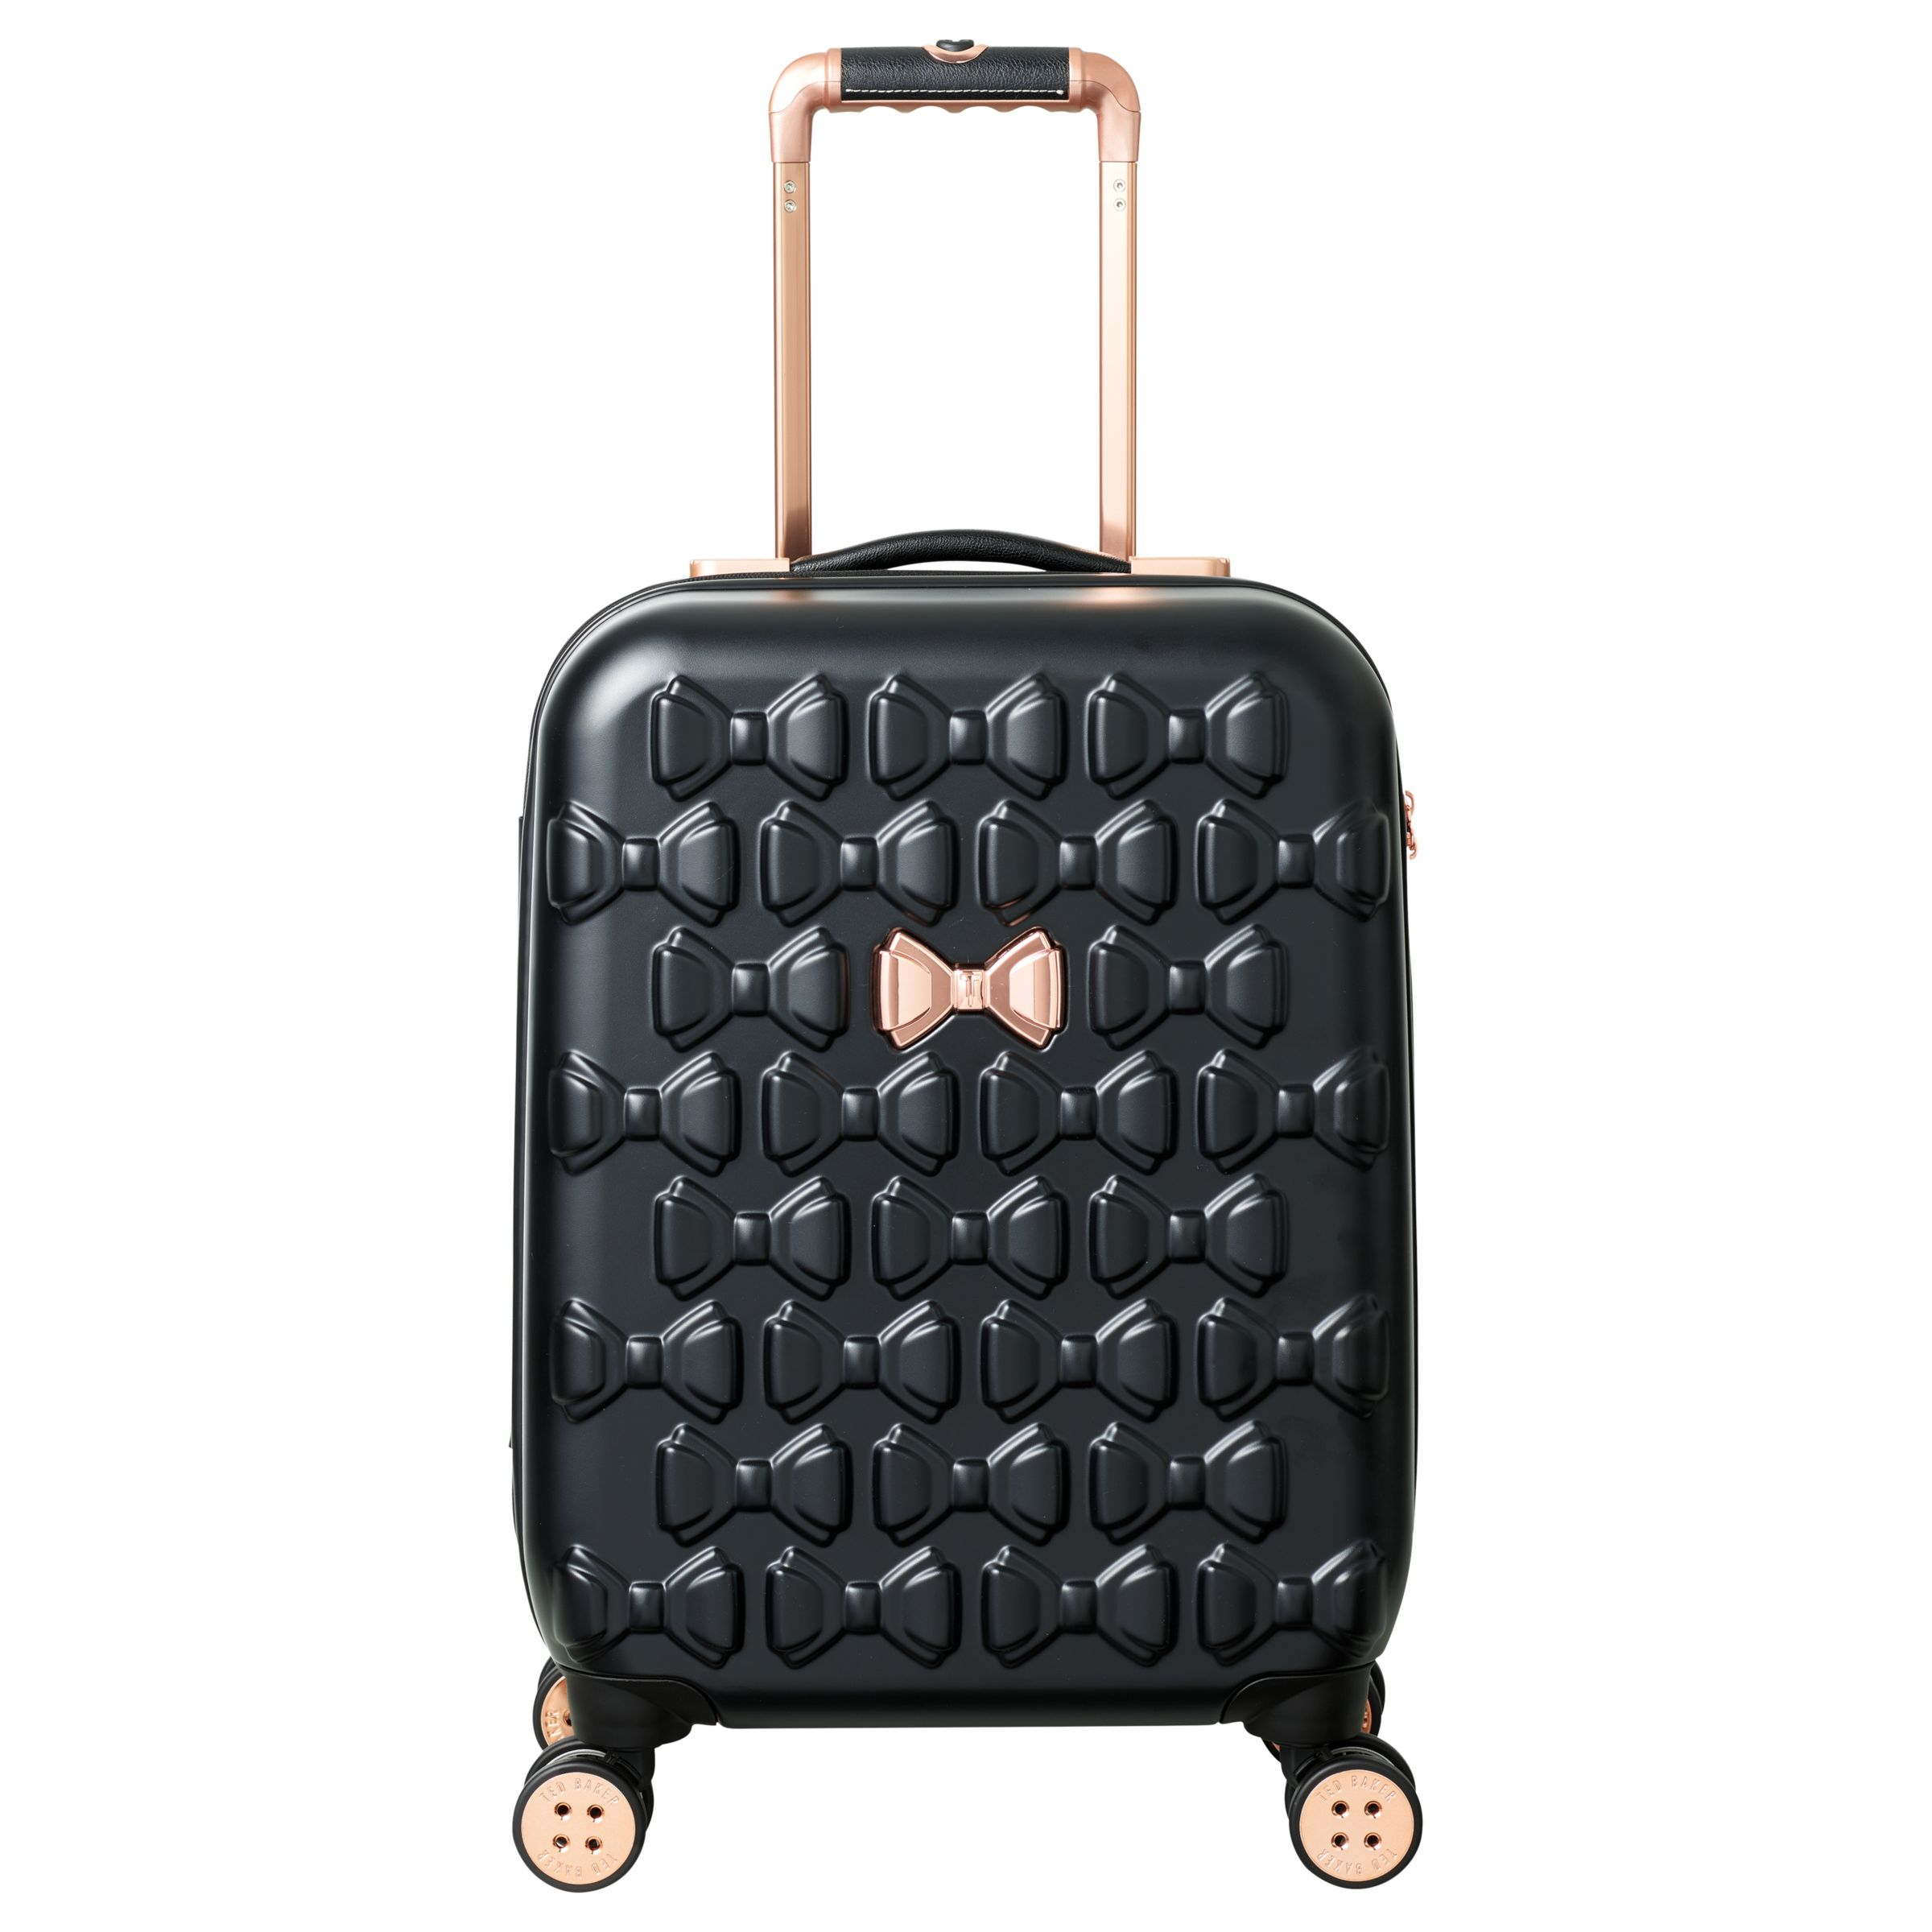 286eac272 Ted Baker Beau 54cm 4-Wheel Cabin Suitcase at John Lewis   Partners